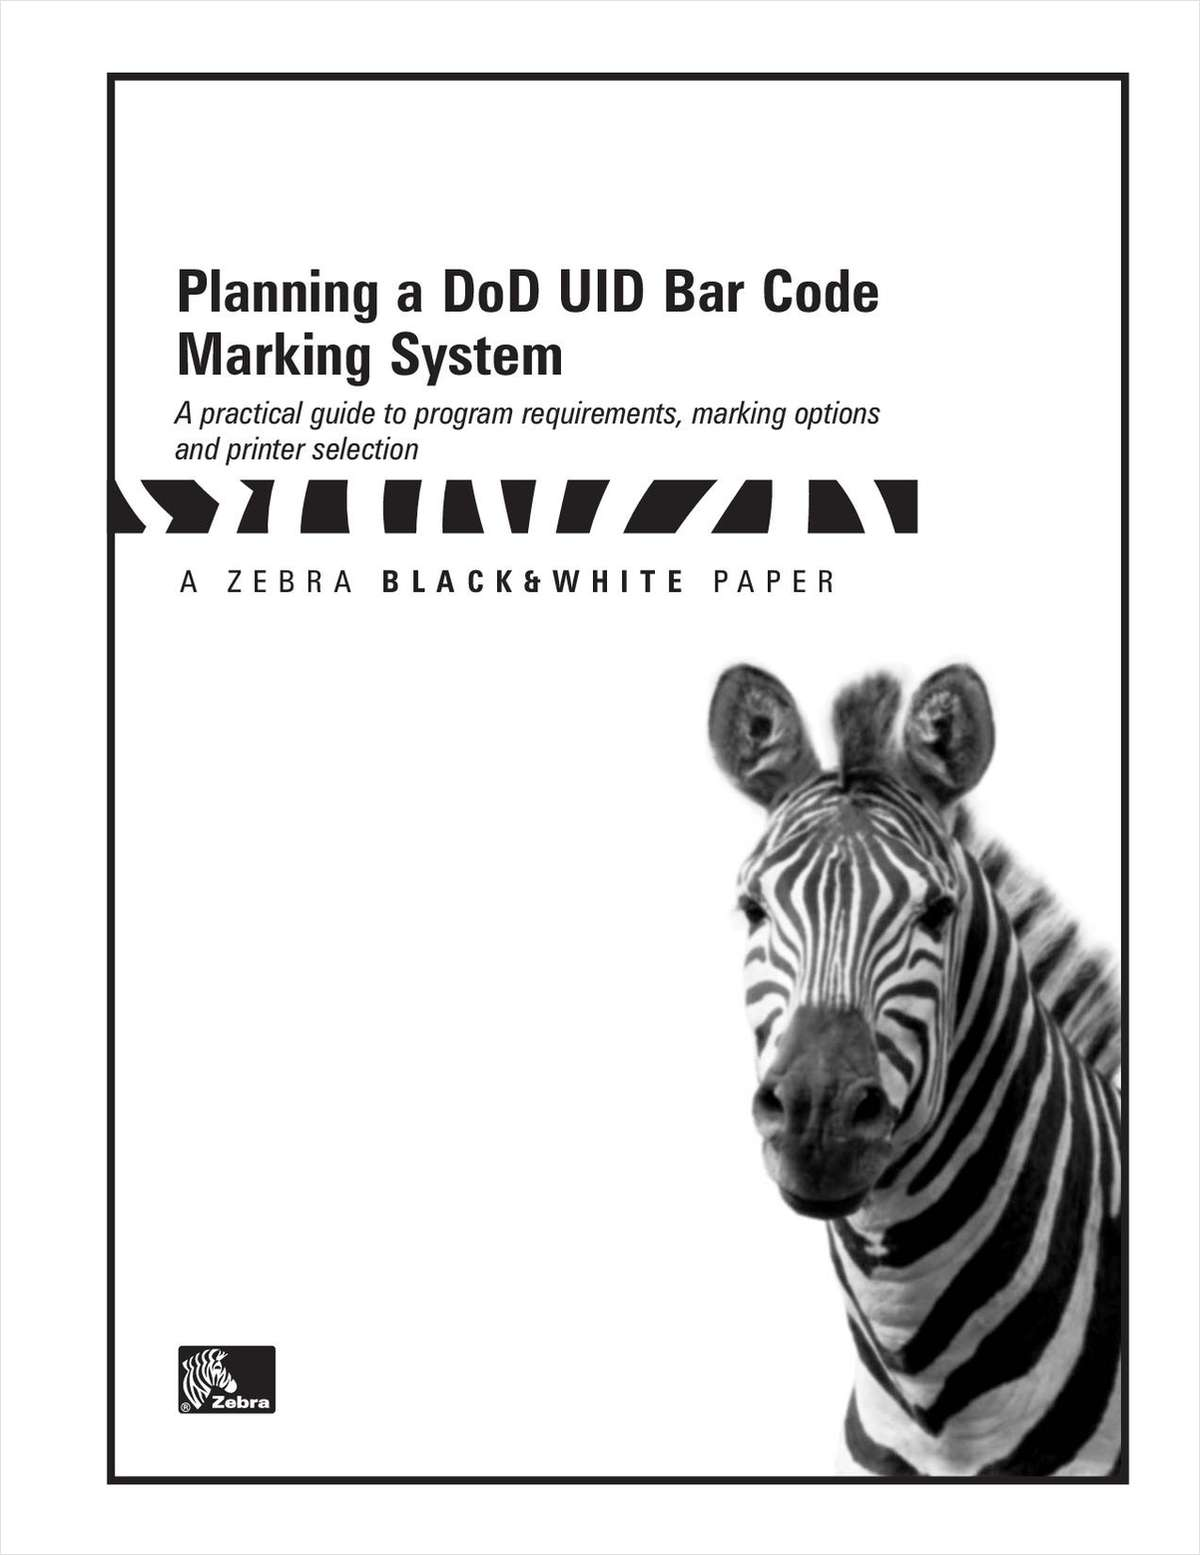 Planning a DoD UID Bar Code Marking System